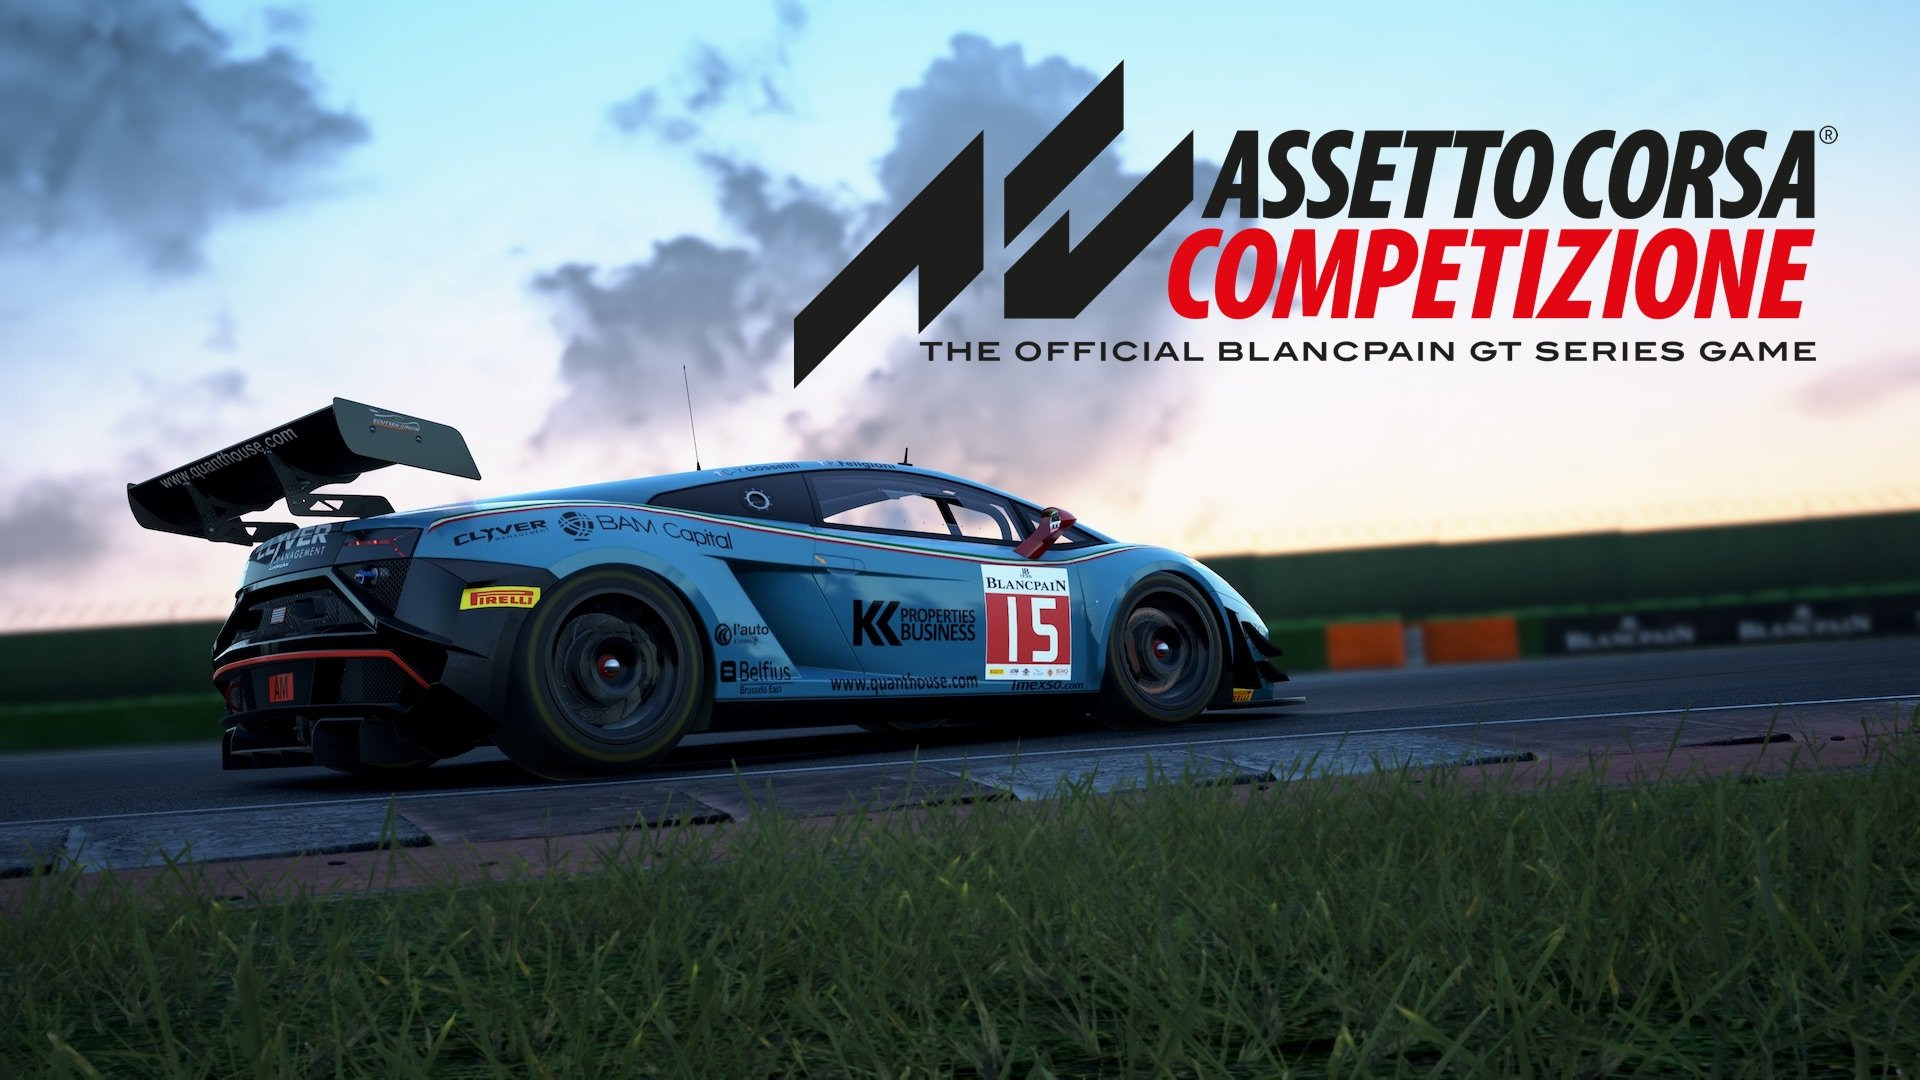 Assetto Corsa Competizione - The British GT Pack is now available for PC